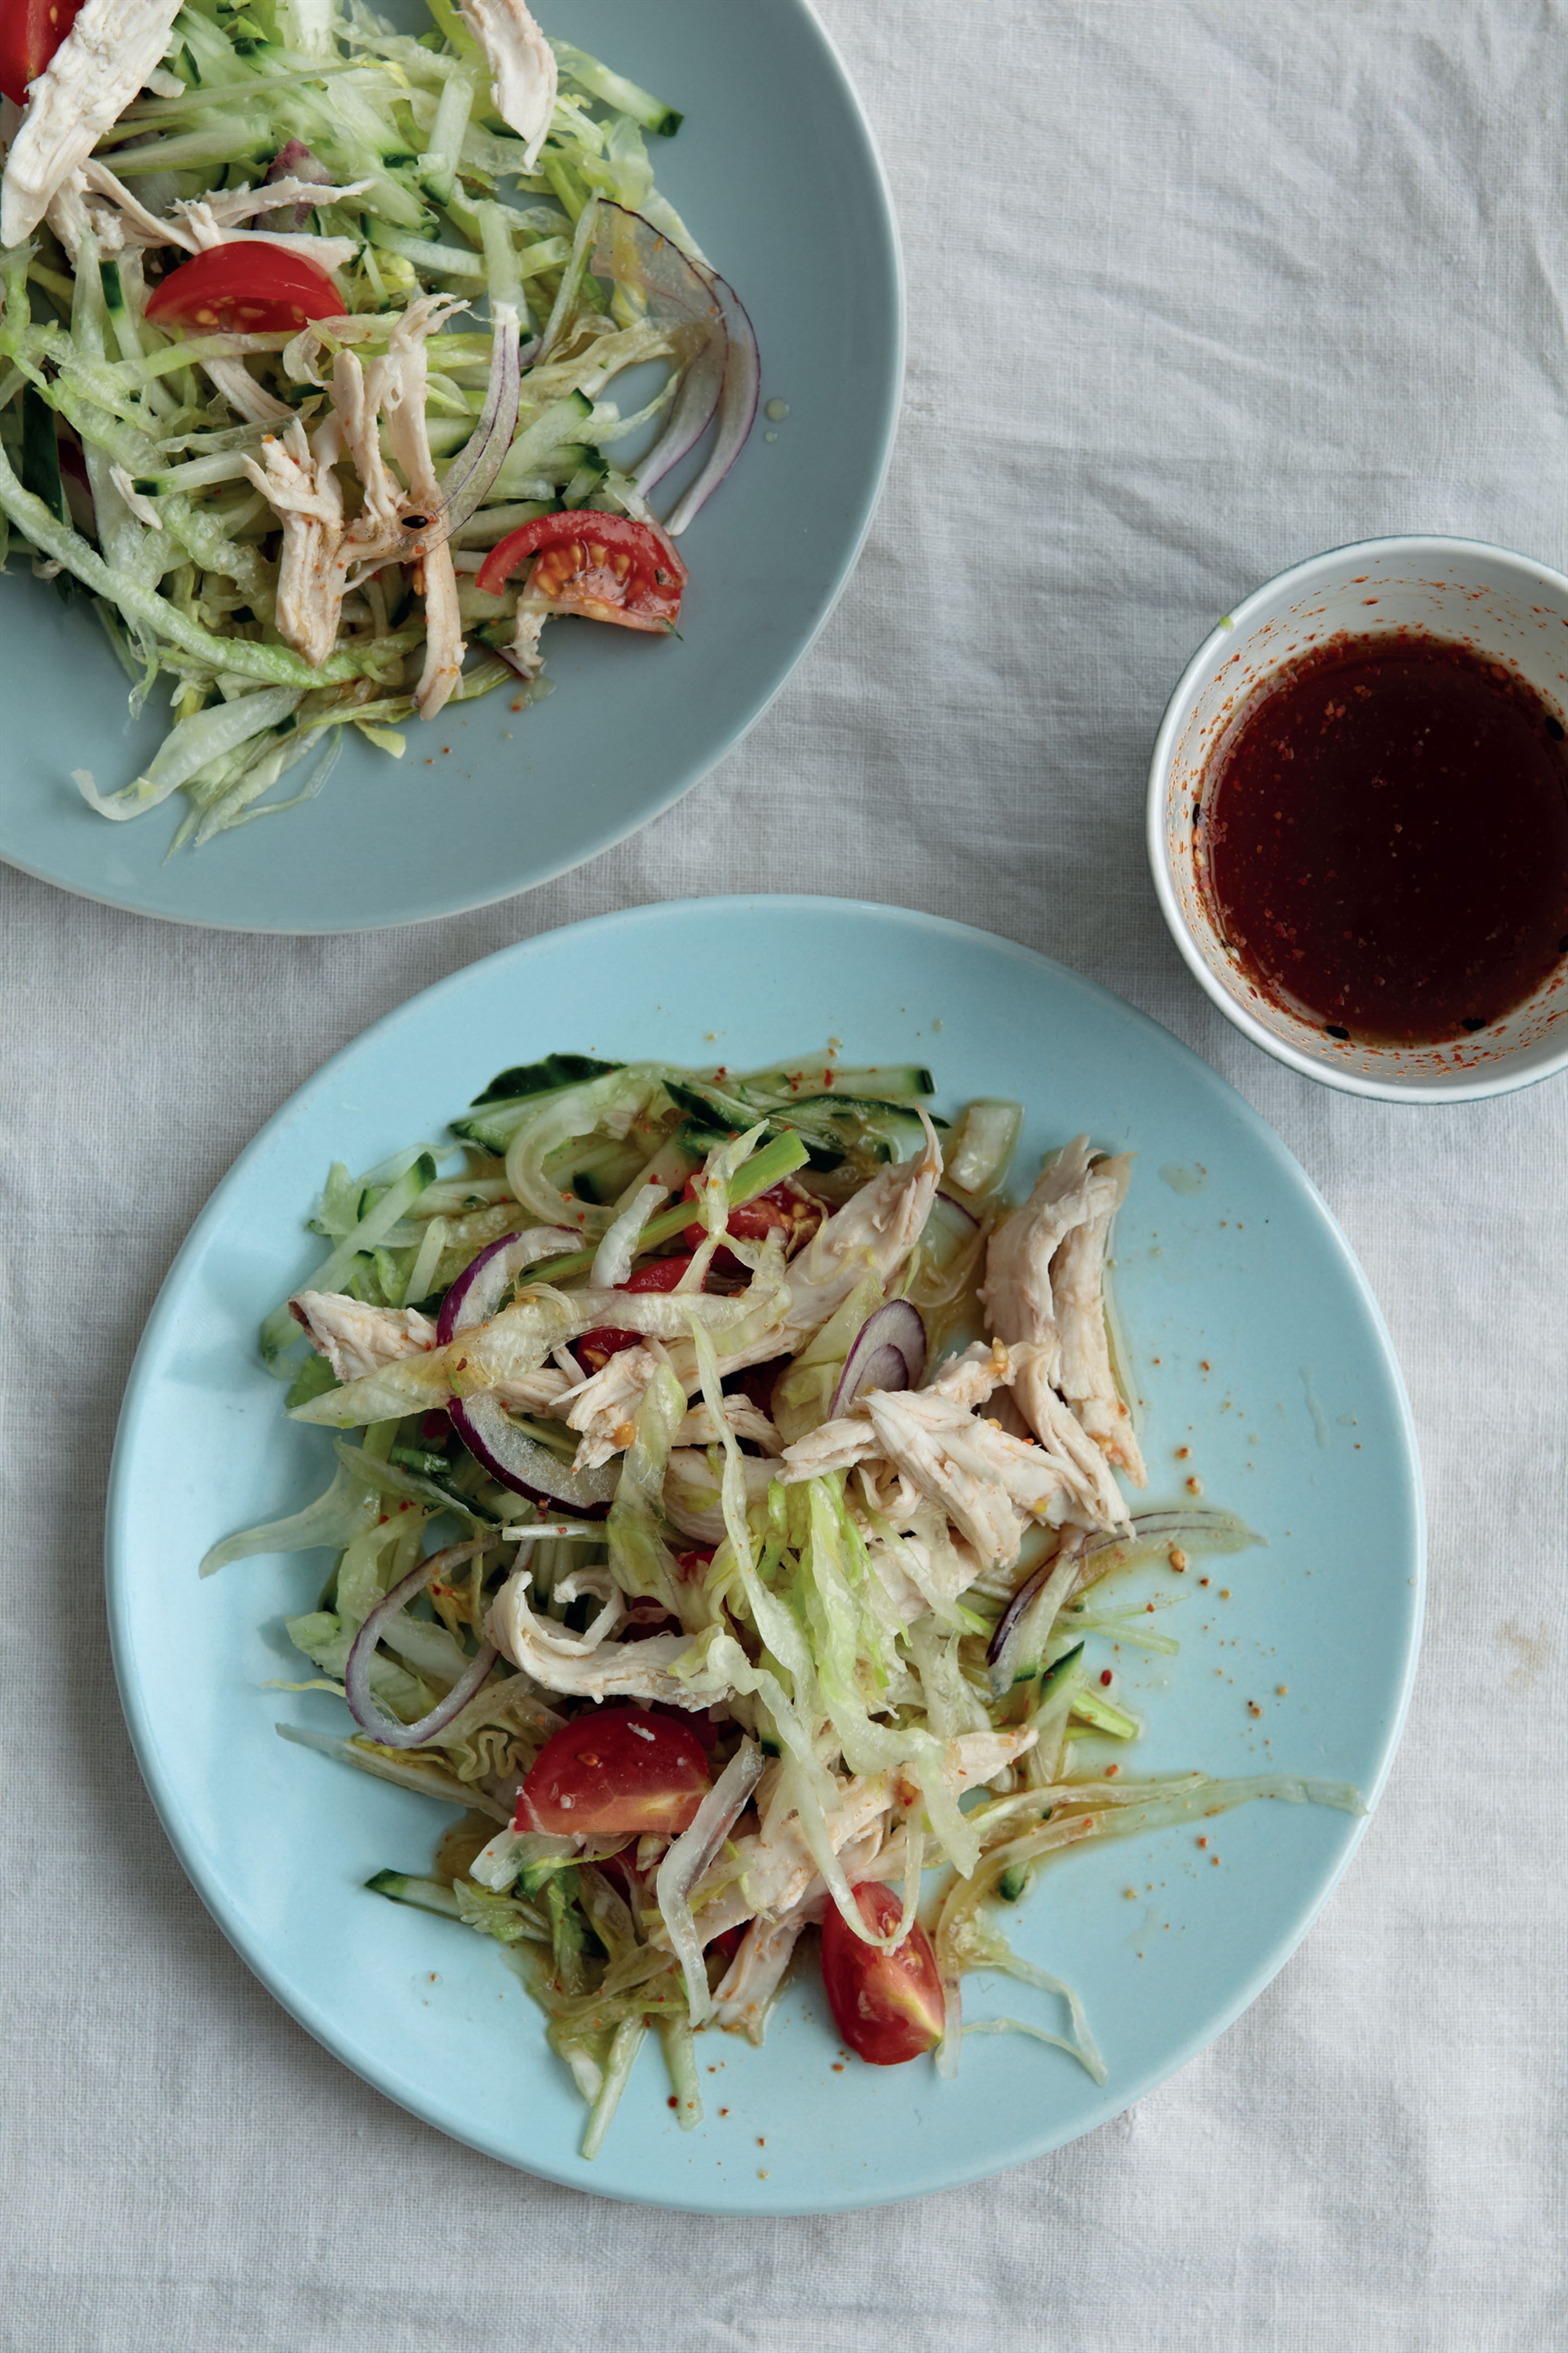 Steamed sesame chicken salad